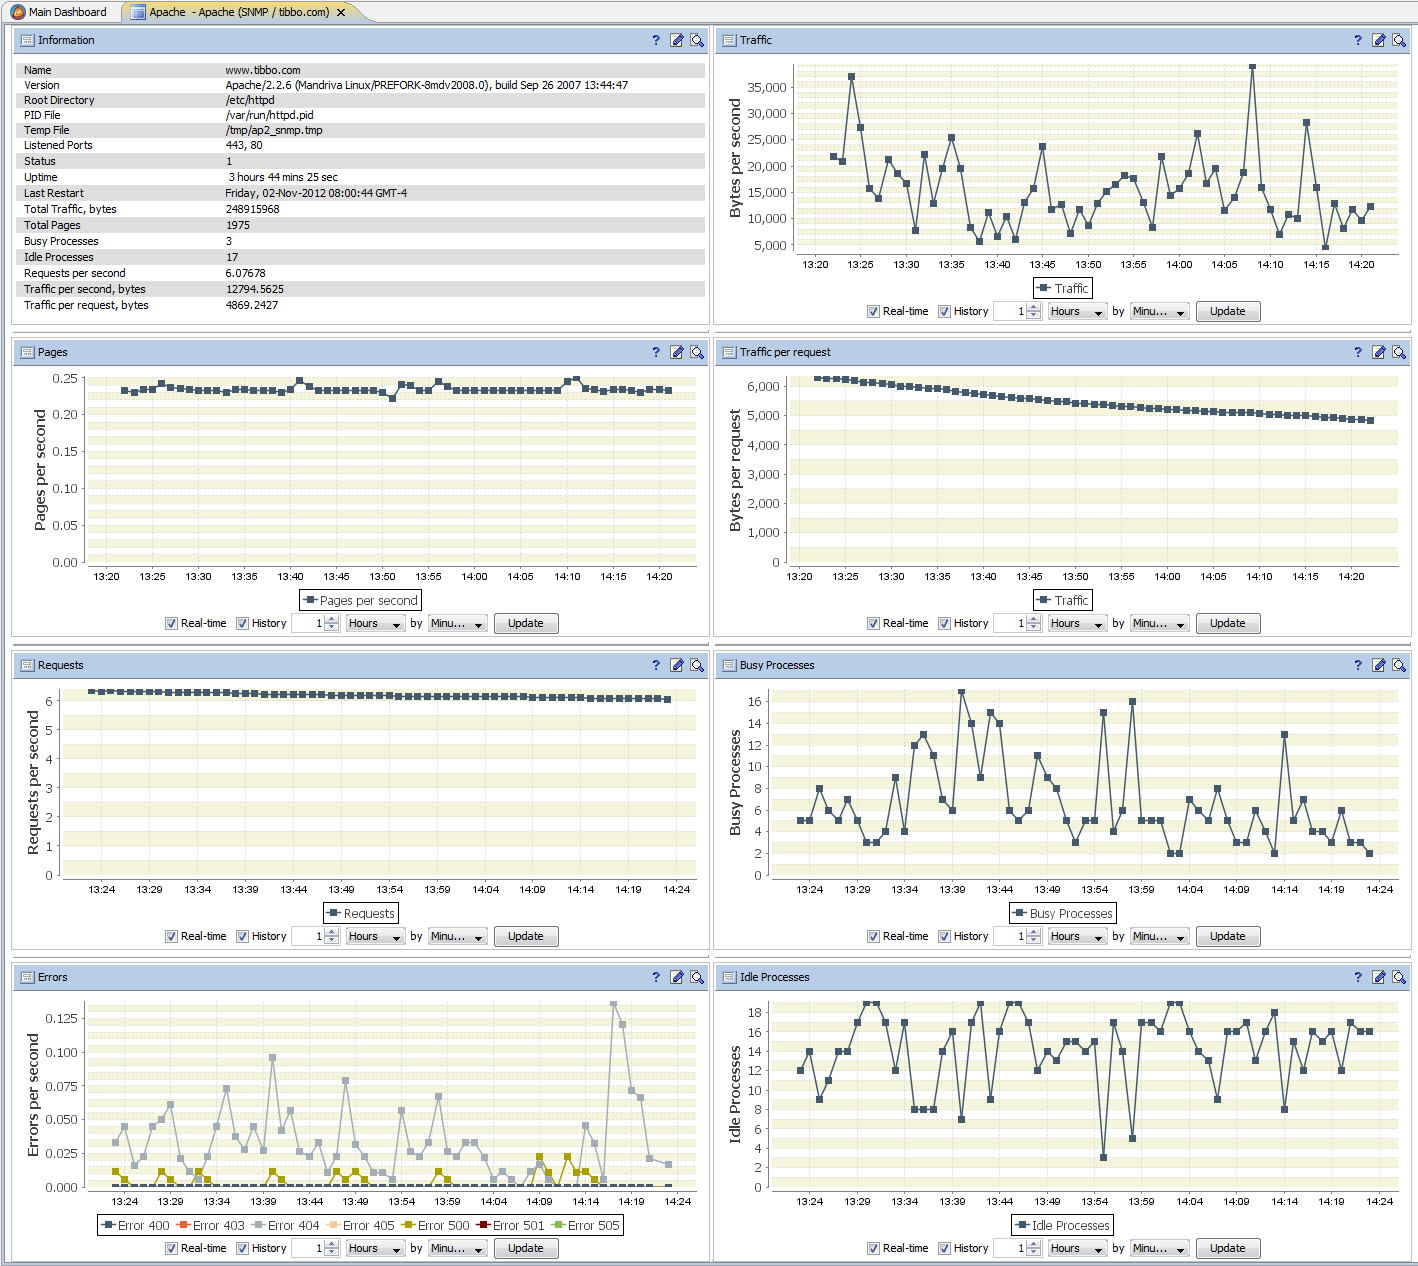 SNMP Monitoring and Management, SNMP Data Processing